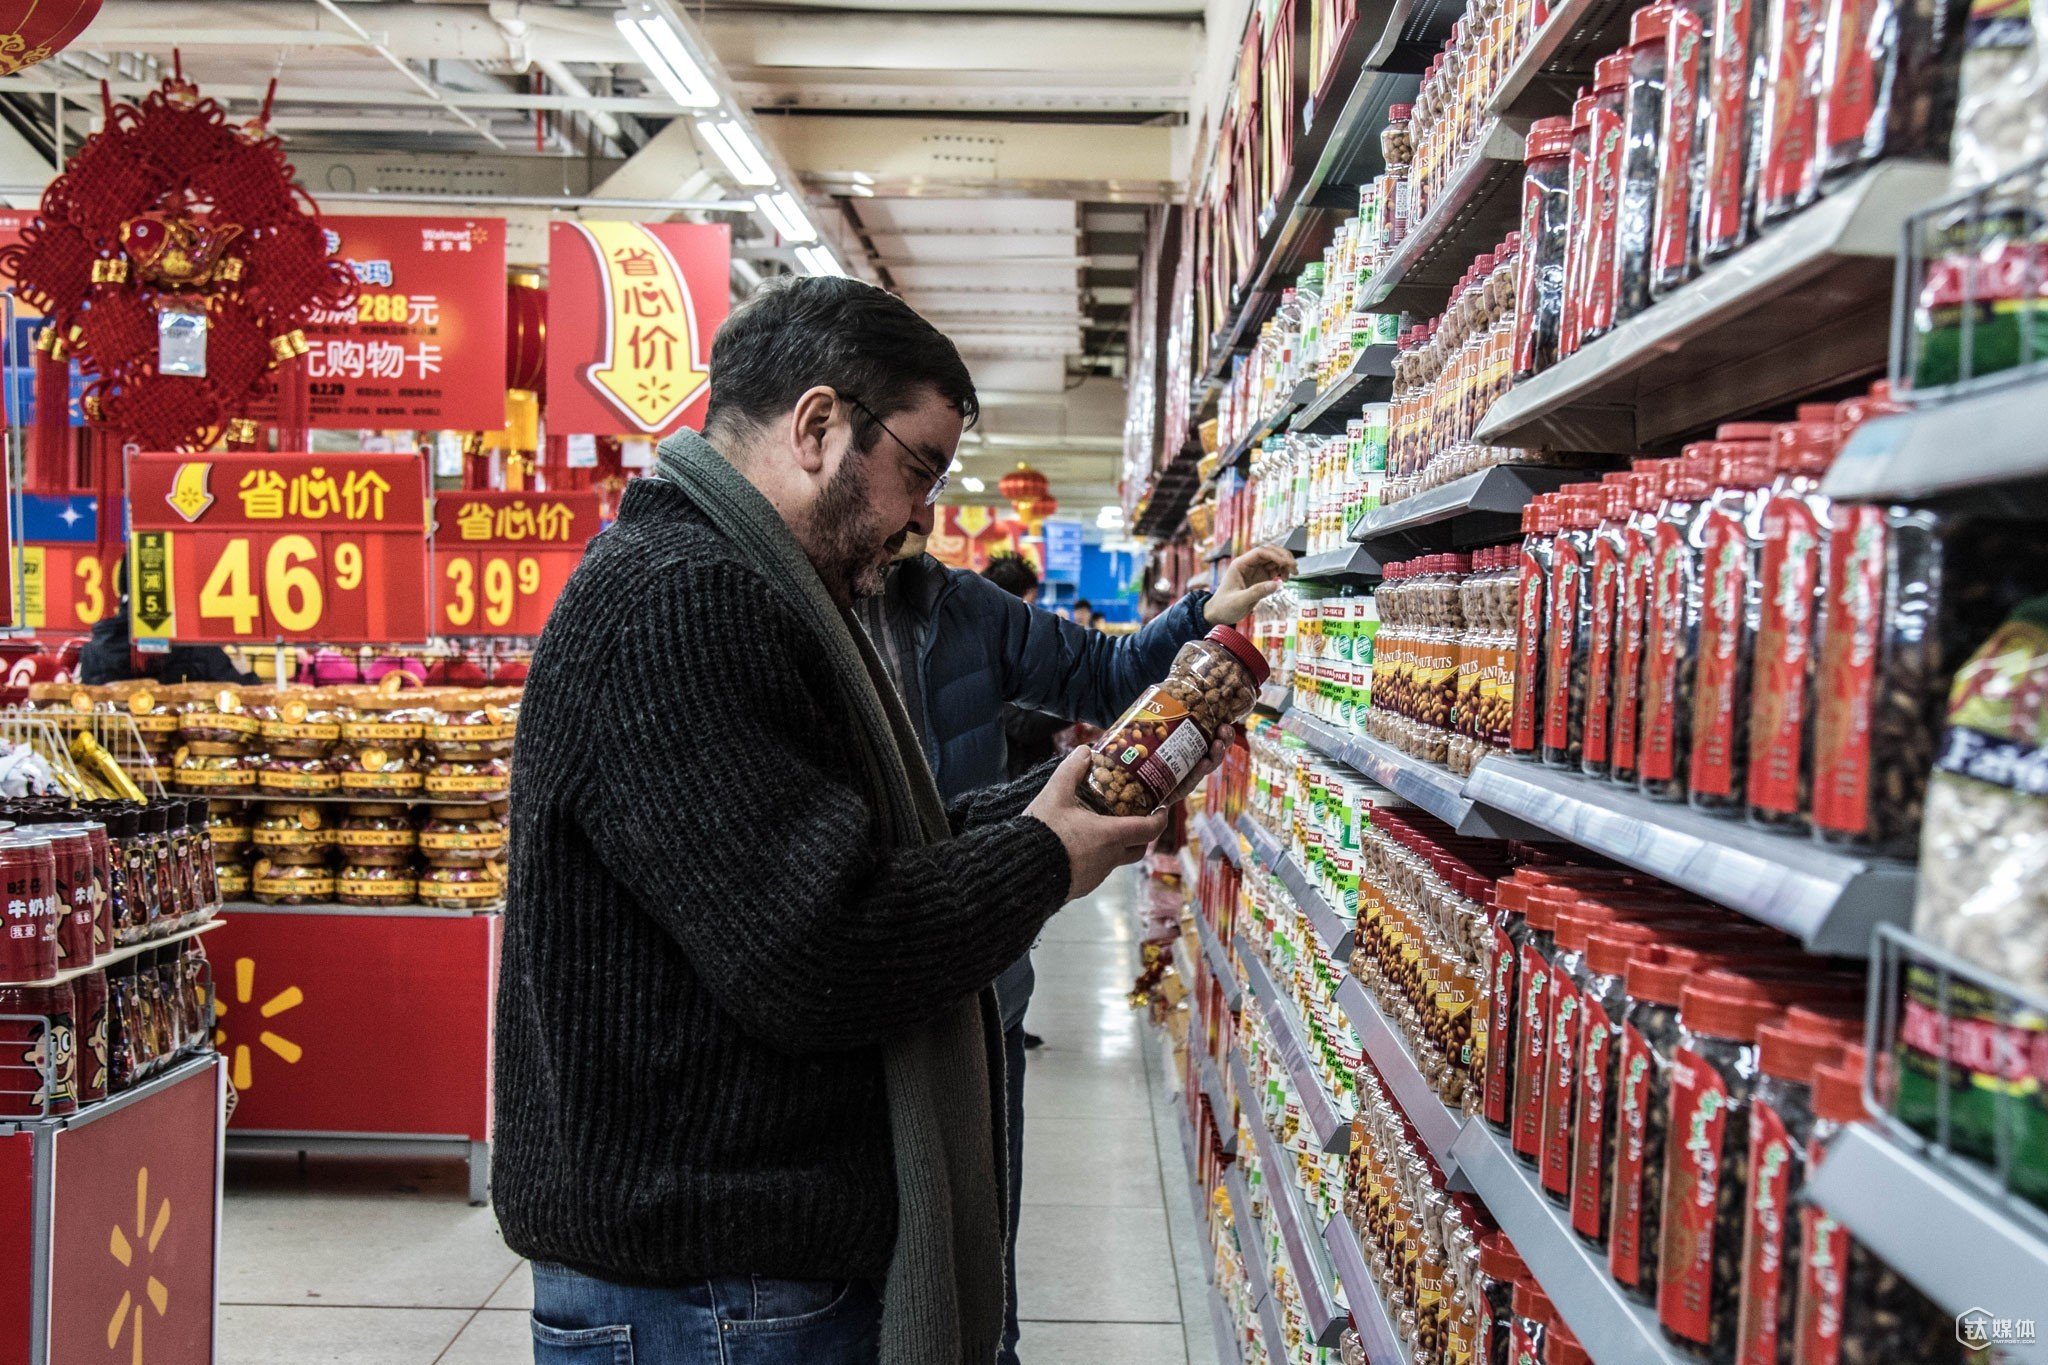 Thomas and his colleagues were collecting samples from the imported food section in a supermarket. However, Okoer.com was primarily concerned with testing the quality of international products sold in China. They adopted the model set up by the Europe, WHO and would test the qualityevery three or six months.